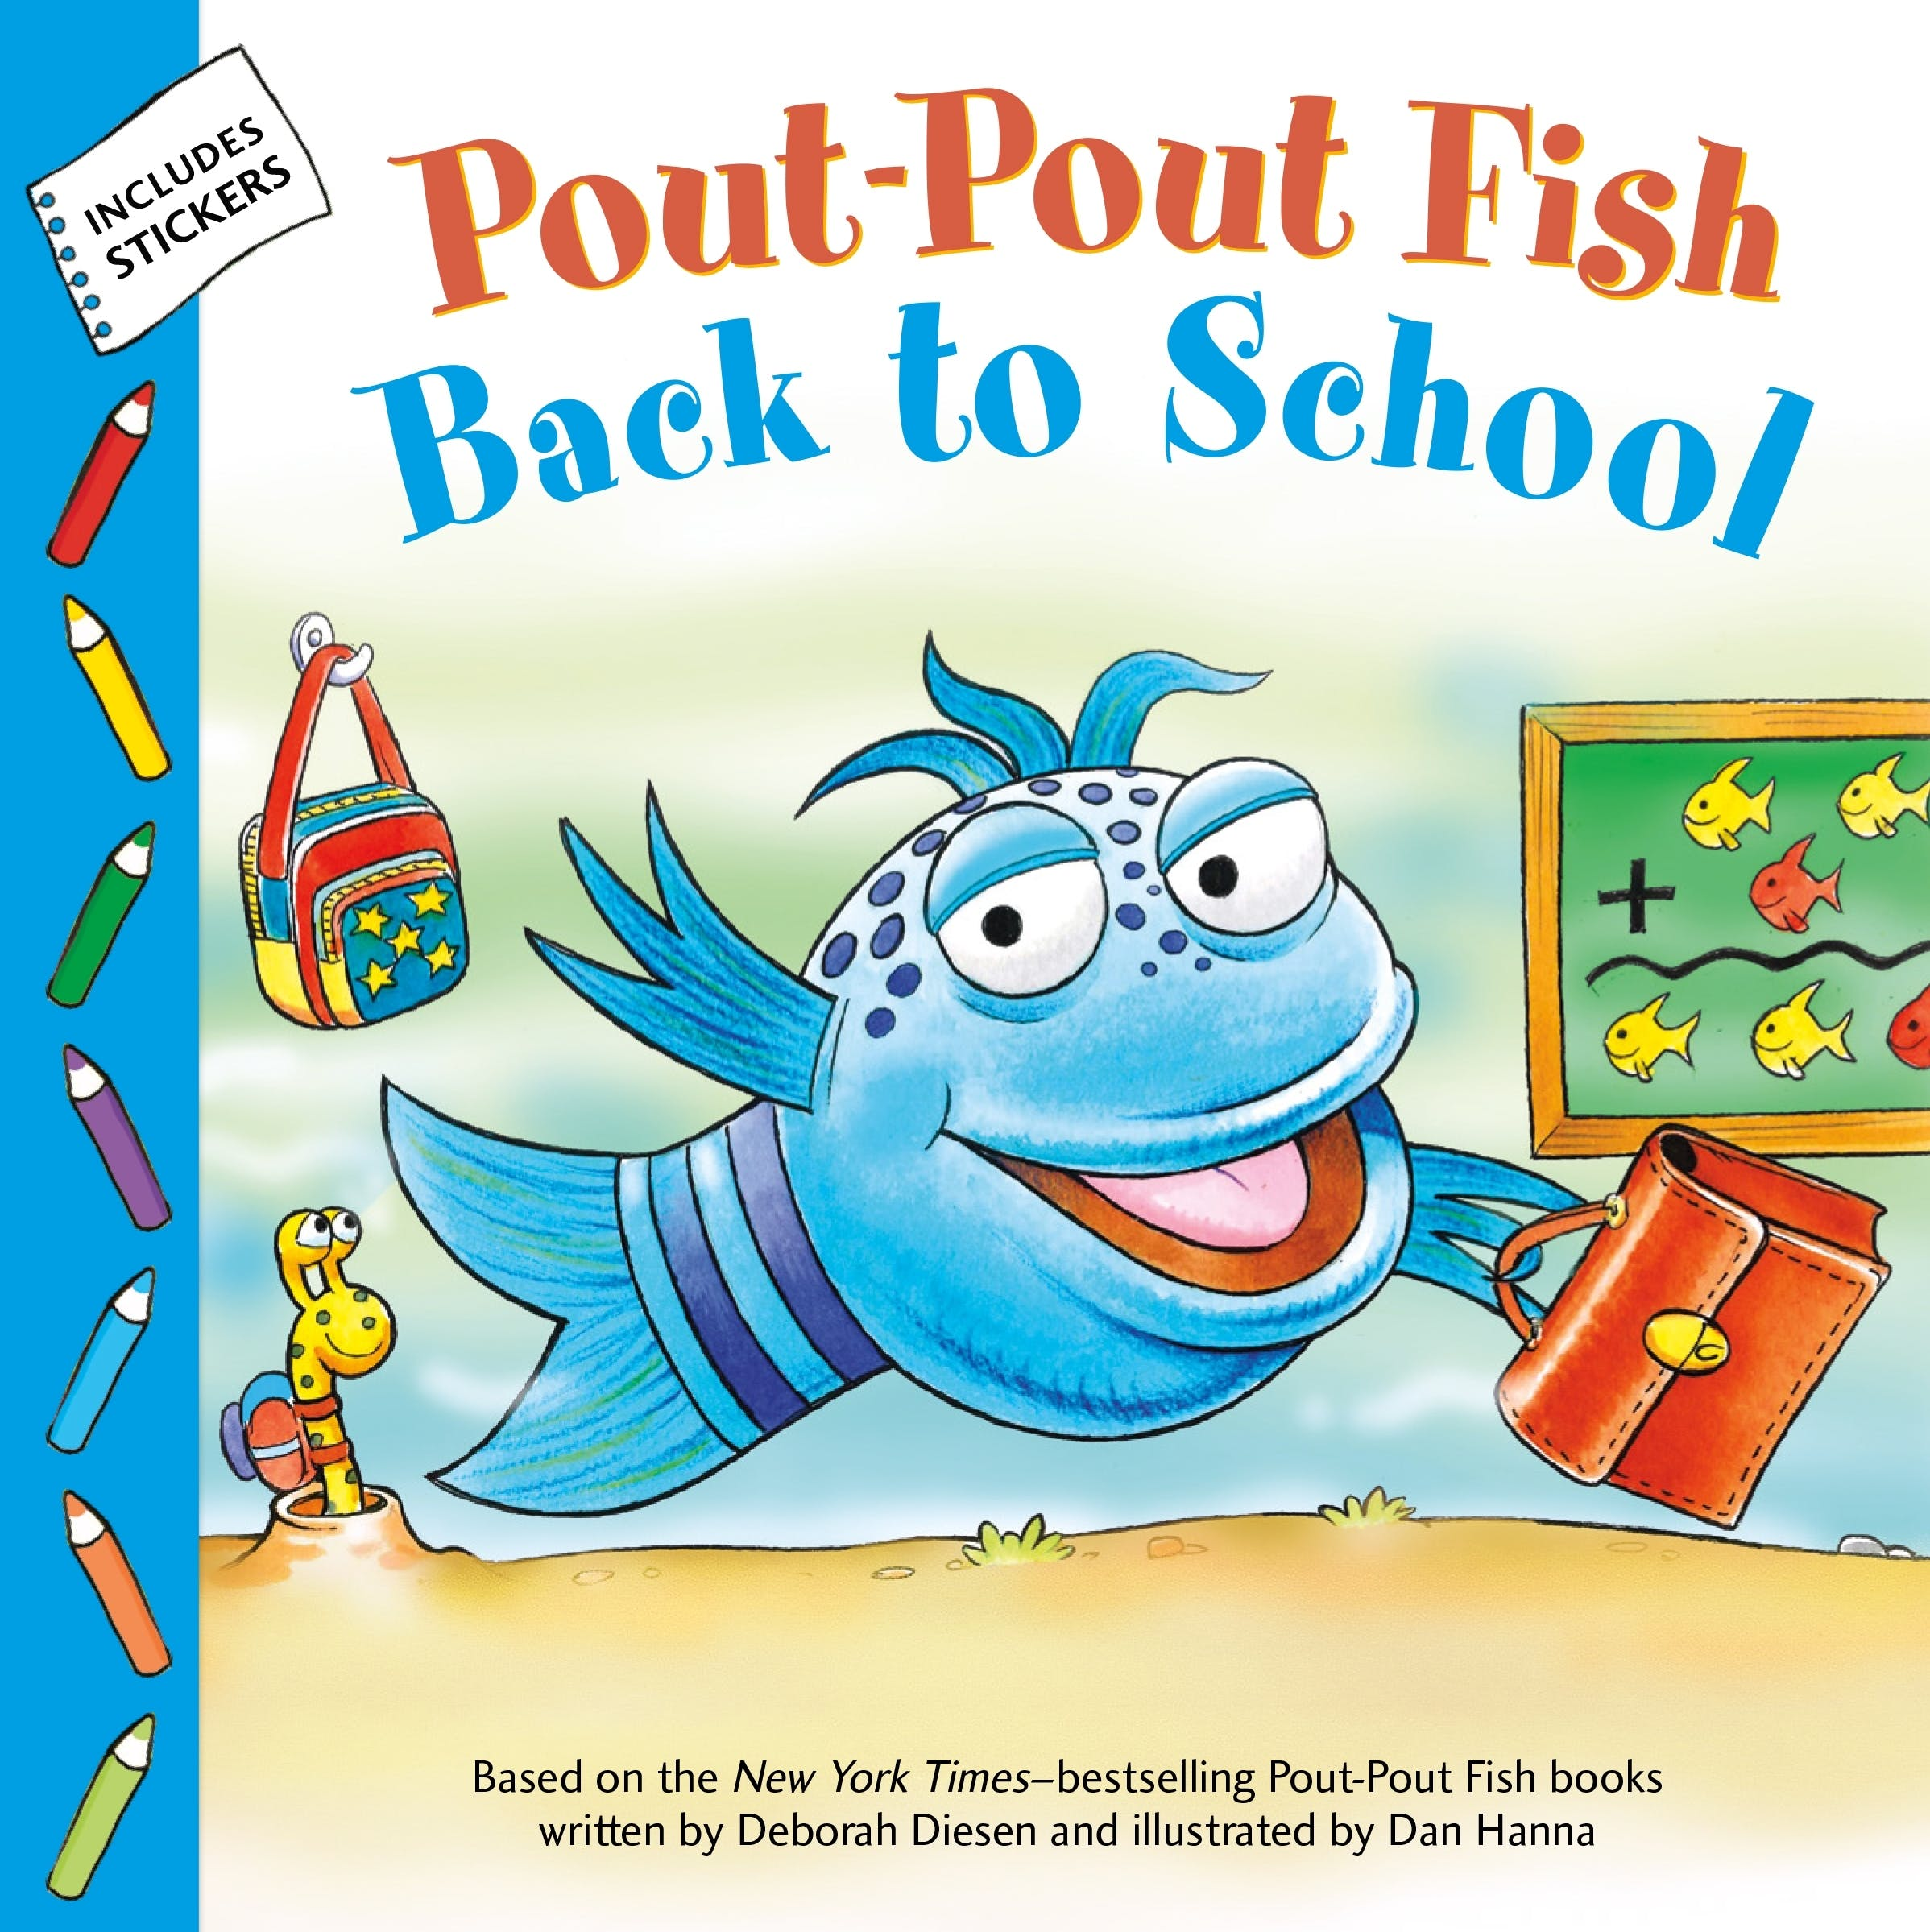 Image of Pout-Pout Fish: Back to School